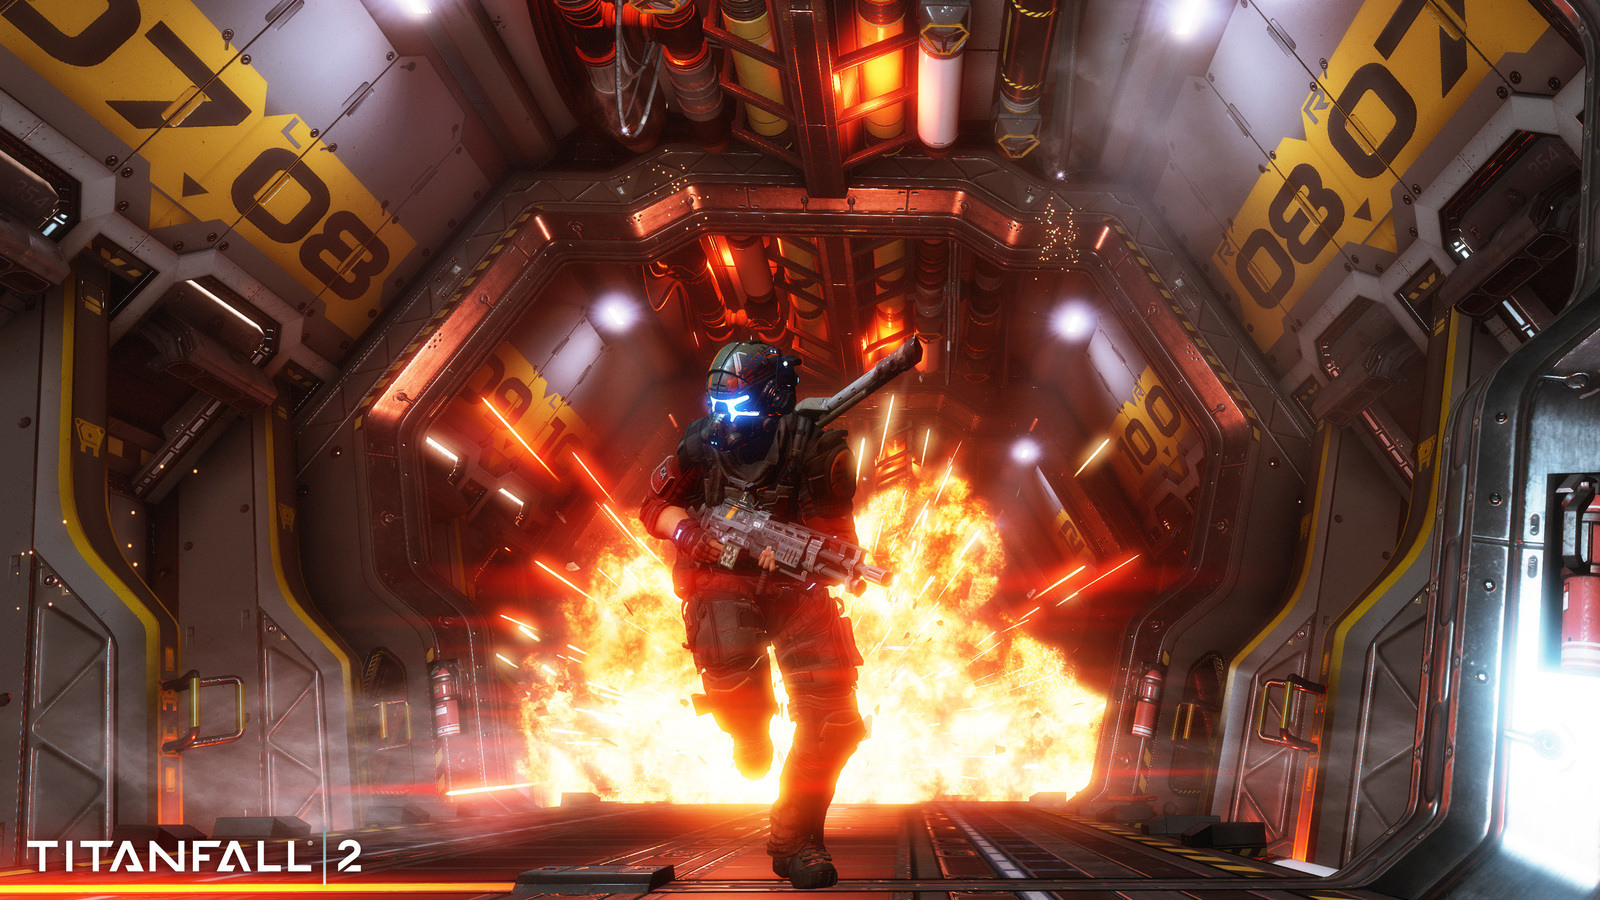 Titanfall 2 for Xbox One image